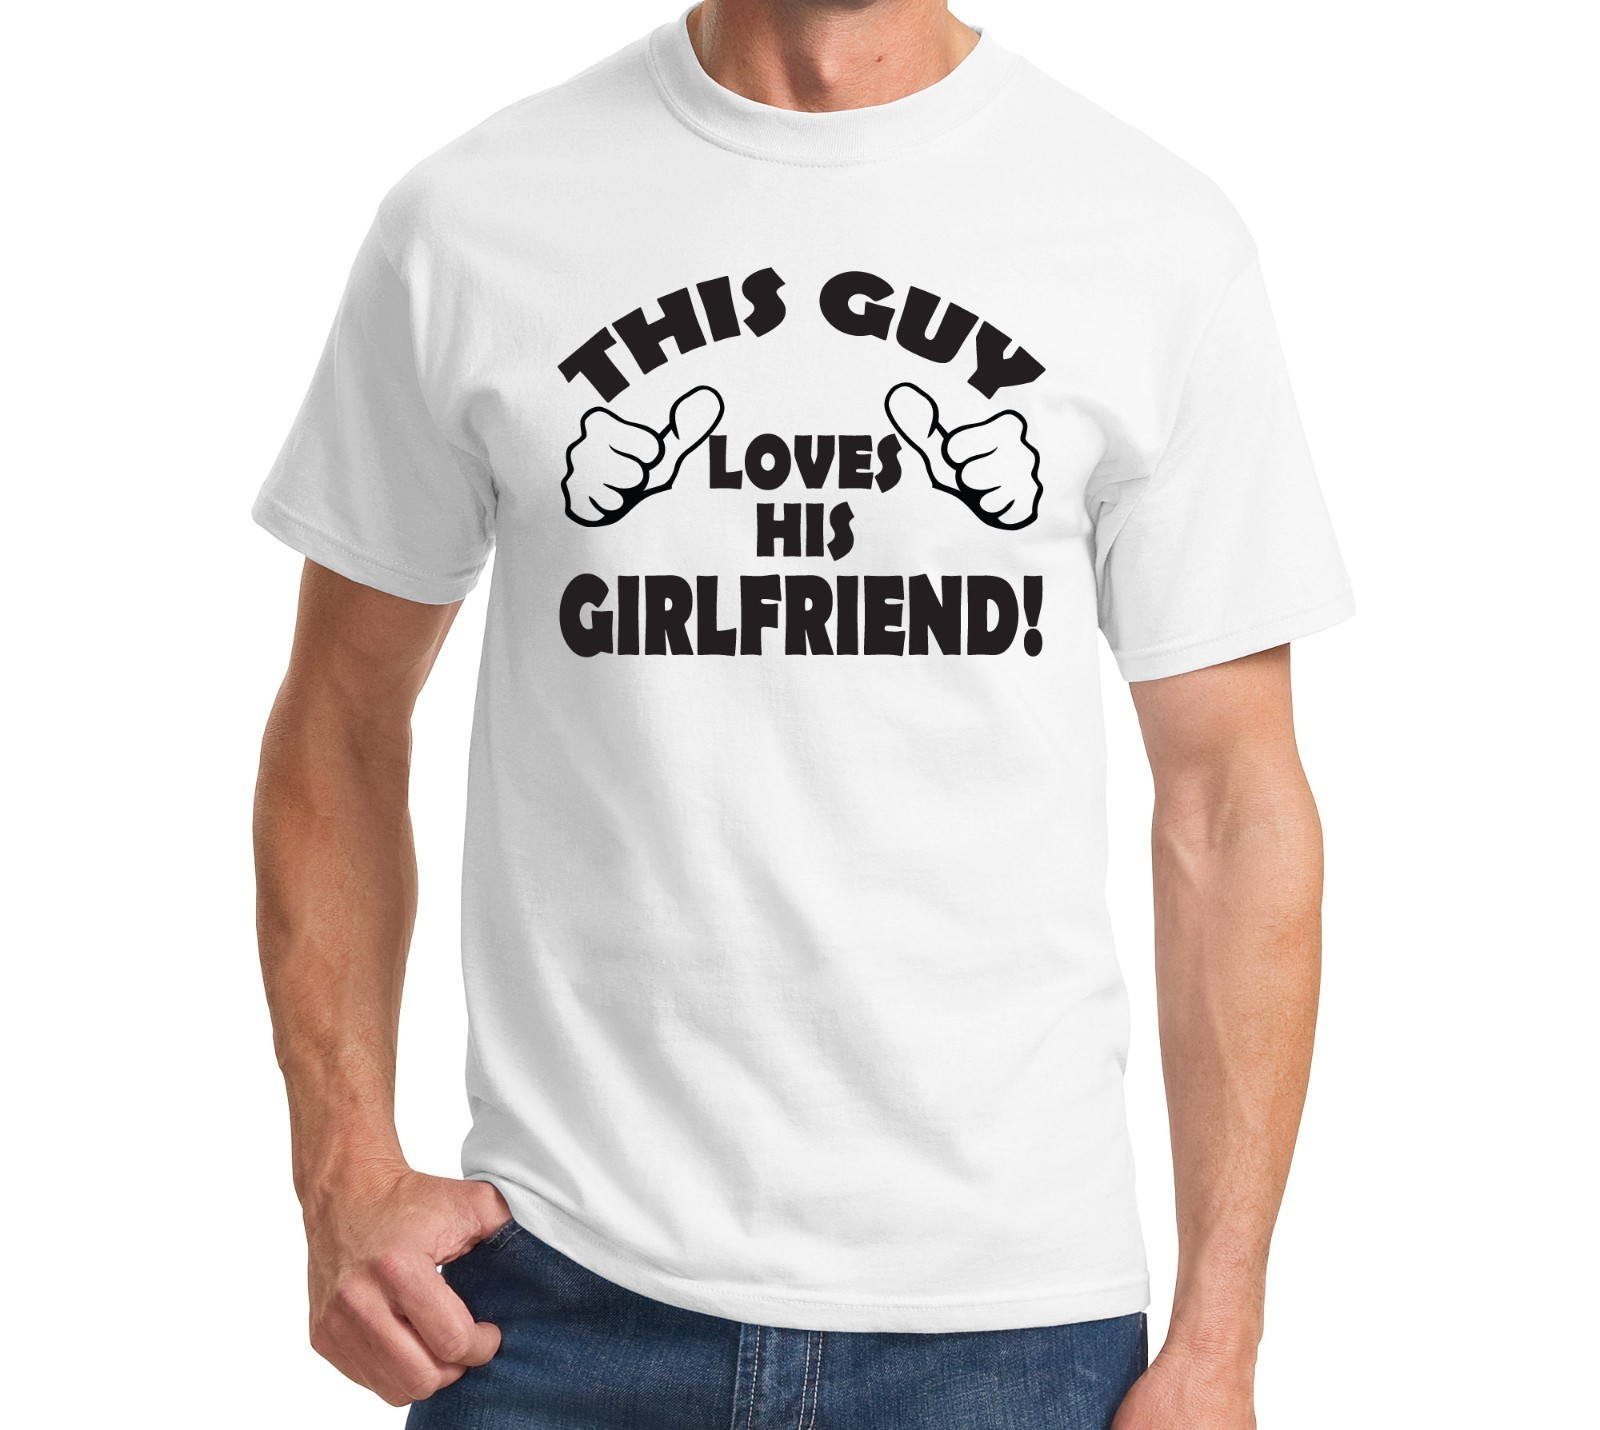 Buy Graphic T-Shirts For Women Online India & T-Shirts For Girls At Bewakoof.com